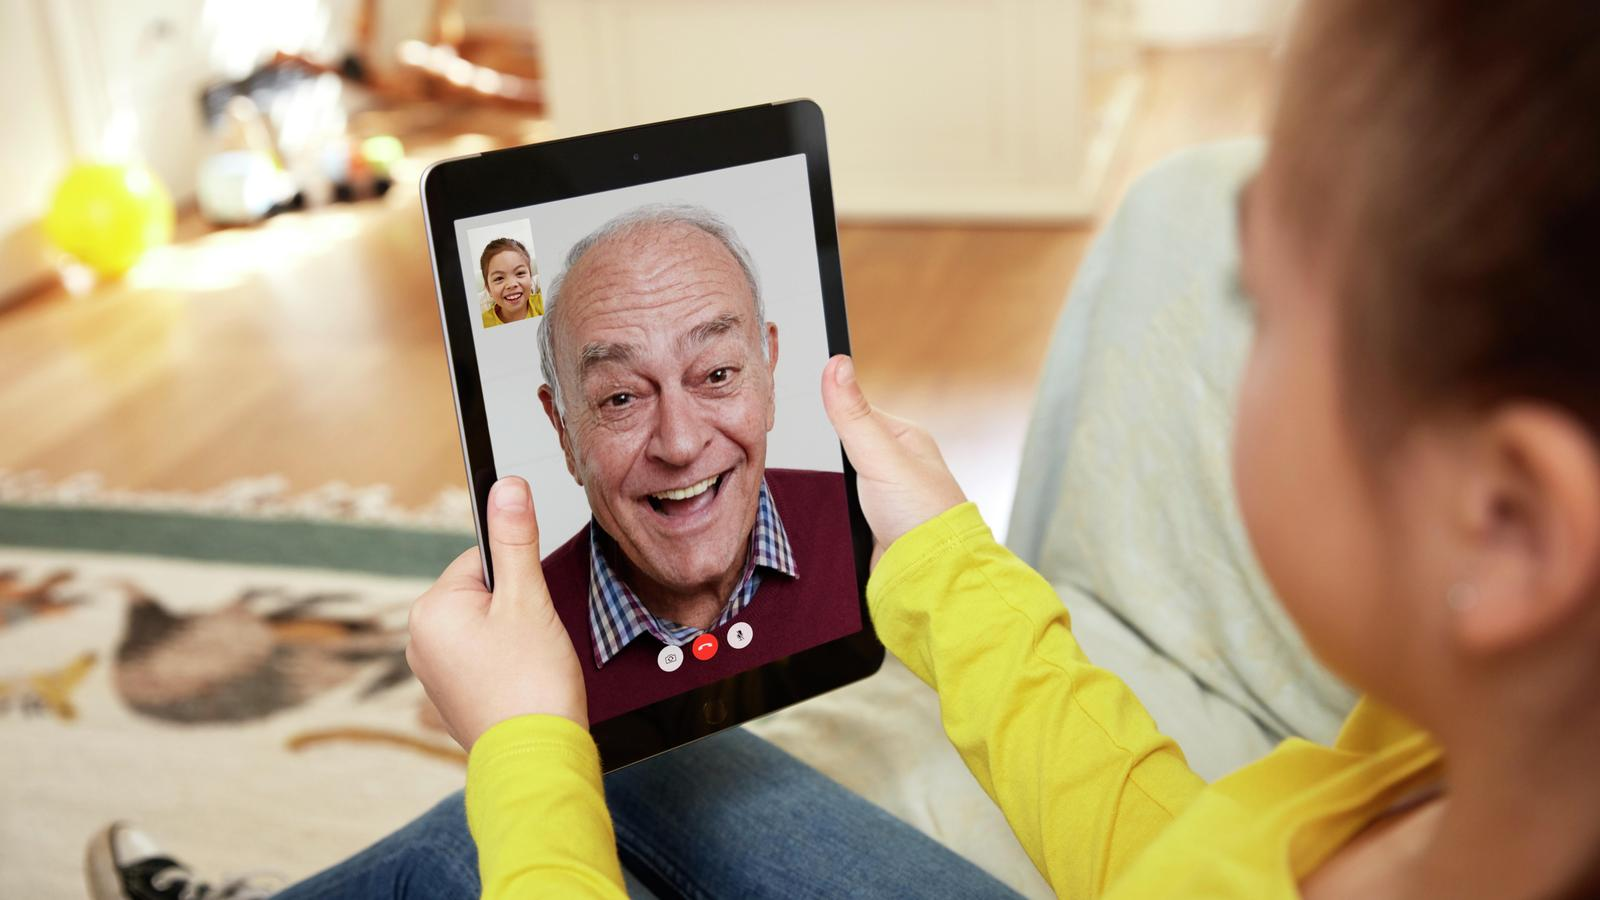 A man appear on an iPad chat with his granddaughter